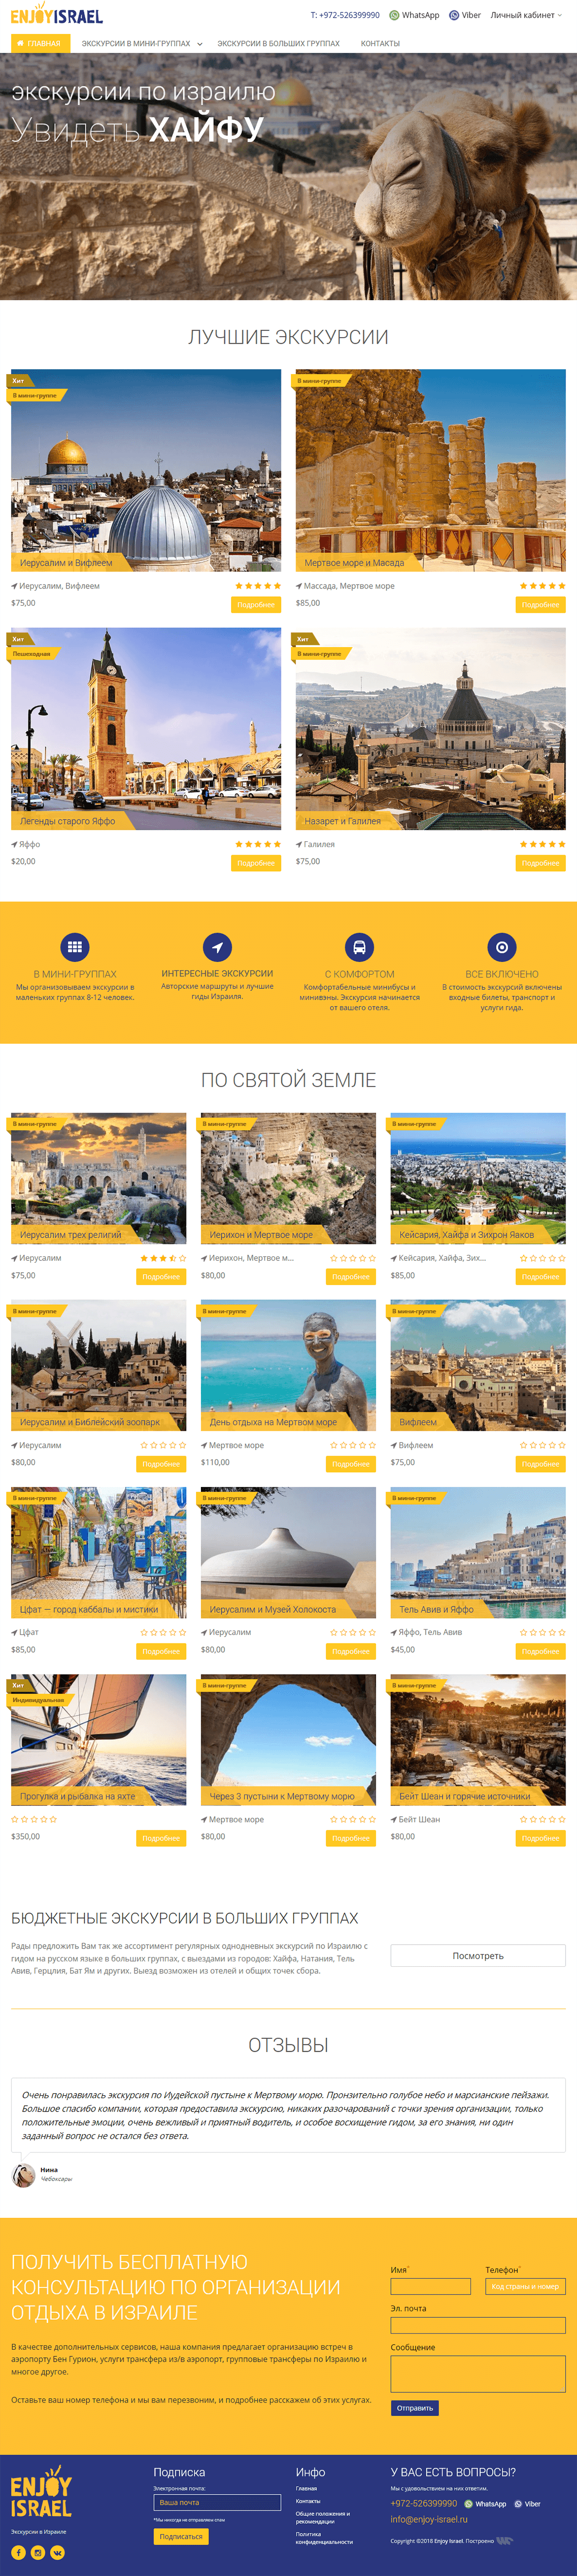 Russian Tours - Tourism in Israel